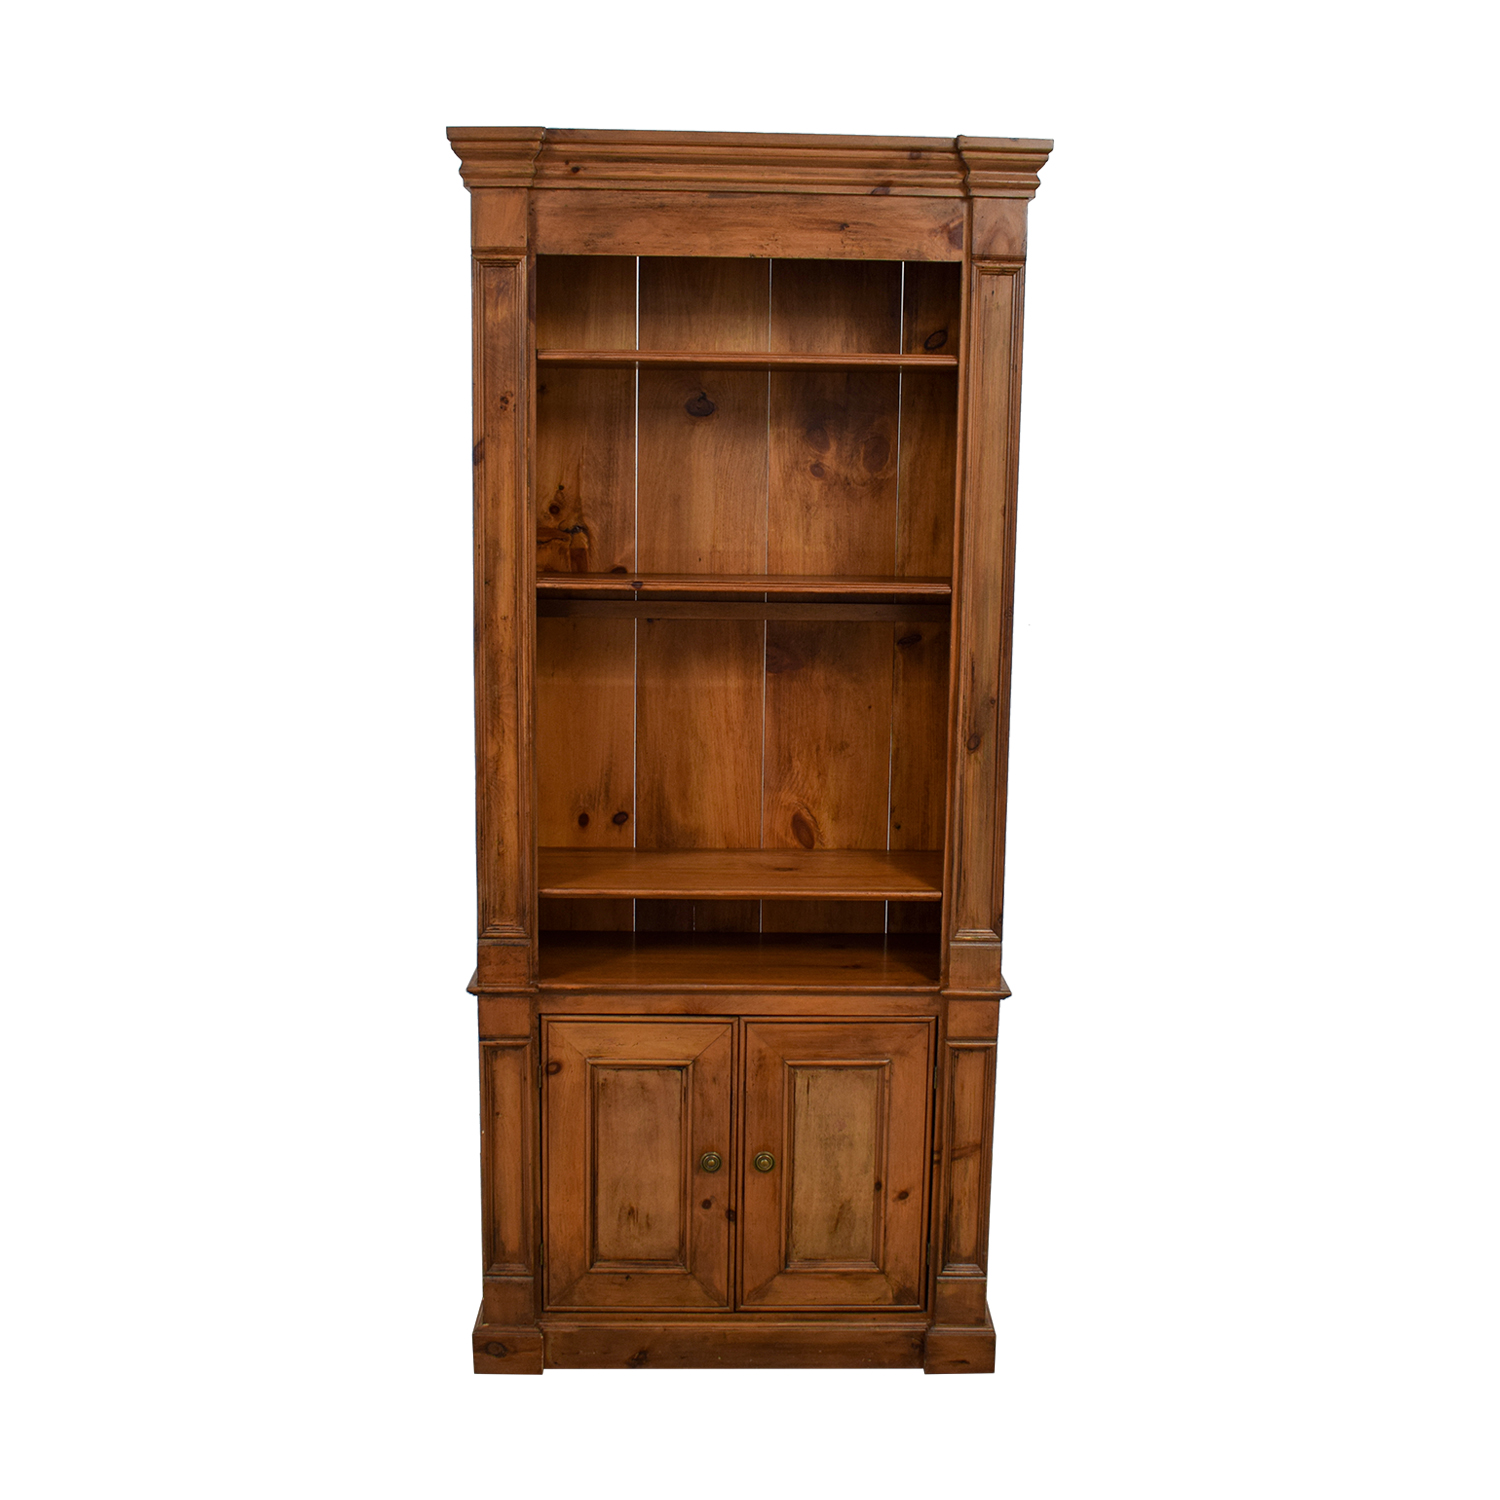 British Traditions British Traditions Wooden Bookshelf Bookcases & Shelving